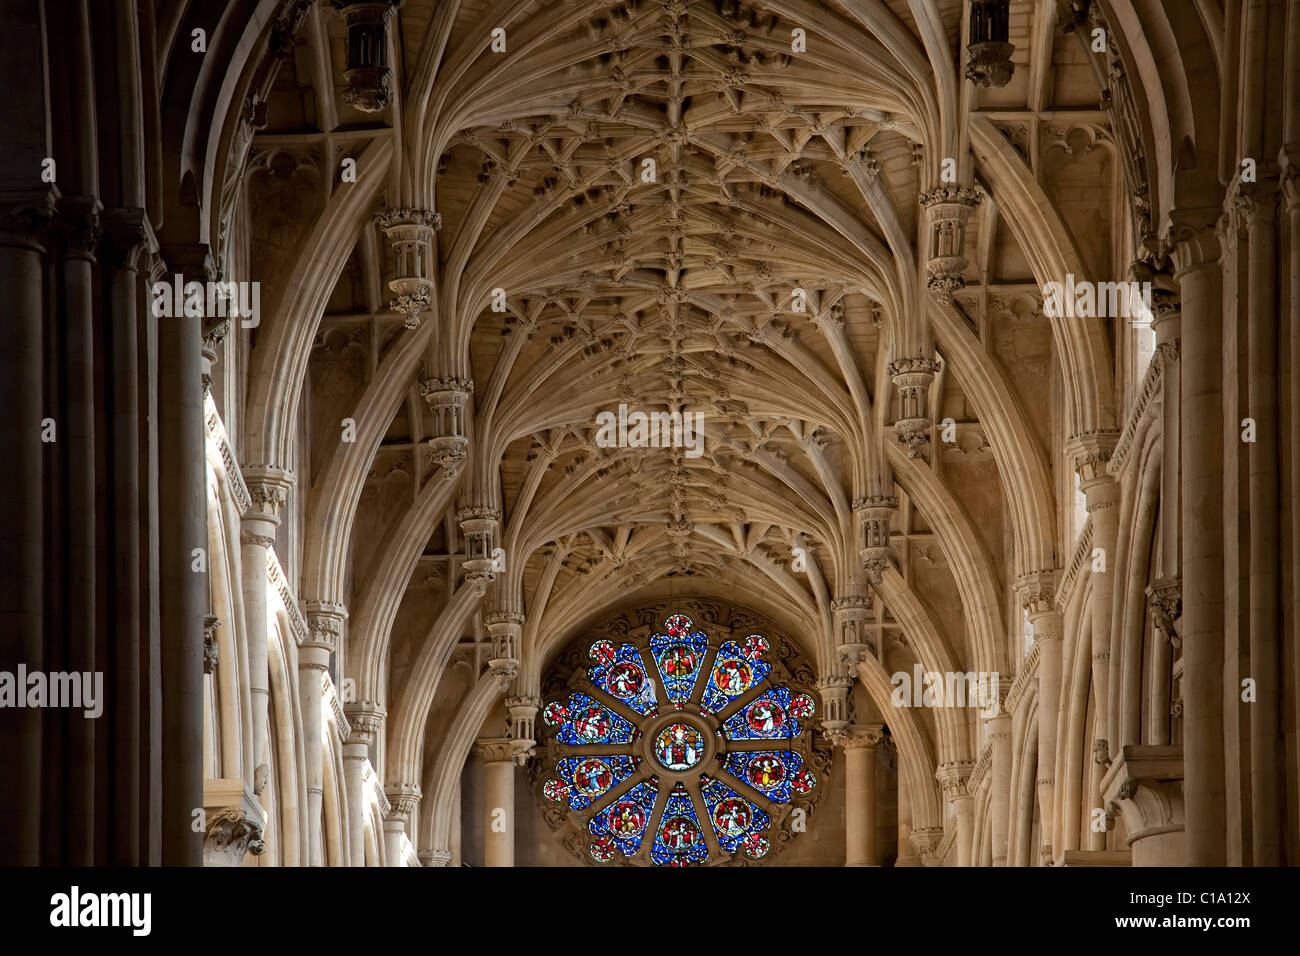 Stained glass and rib-vault ceiling of the Christ Church Cathedral of the Oxford University, Oxfordshire, England, - Stock Image